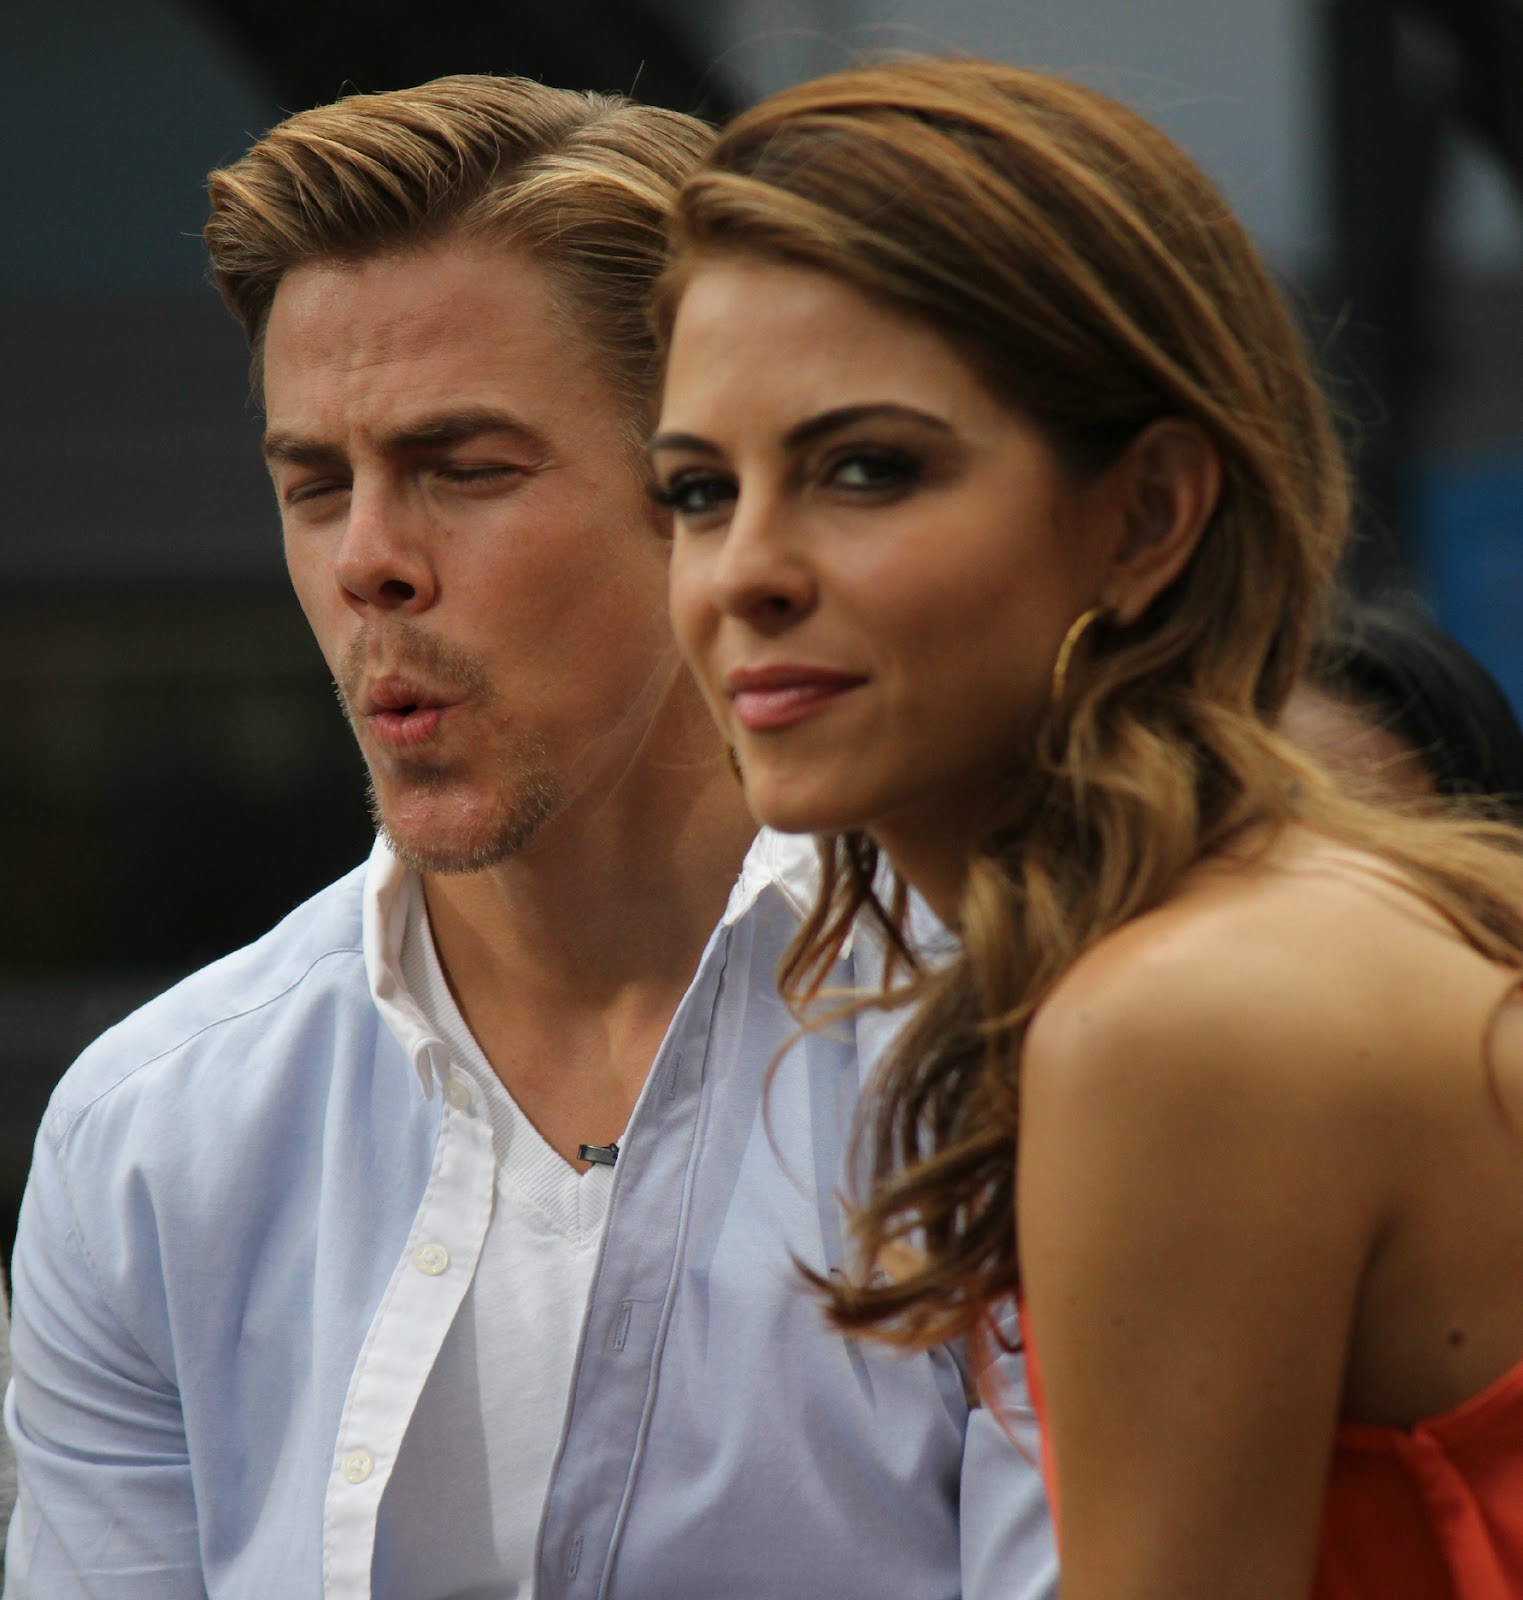 maria dating derek Twist and turns of fate: chapter one // dwts fanfiction better known as bc jean, had been dating #dancing with the stars #dwts #fanfic #maria menounos #derek.